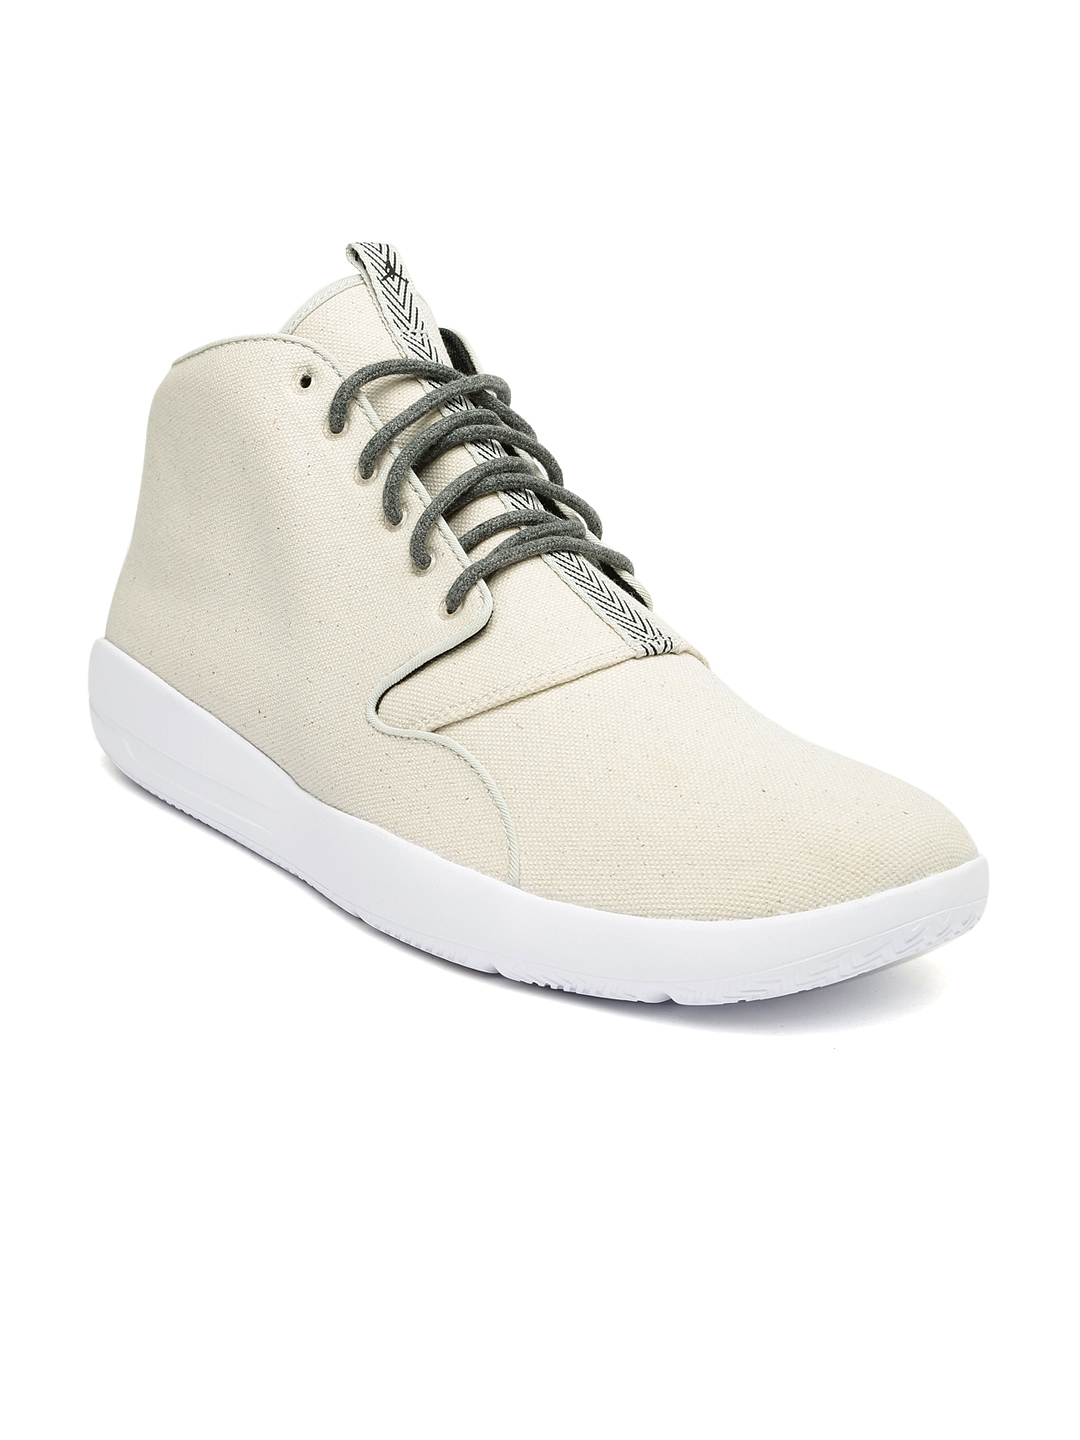 68205a87cd0dc6 Buy Nike Men Beige Jordan Eclipse Chukka Solid High Top Sneakers ...